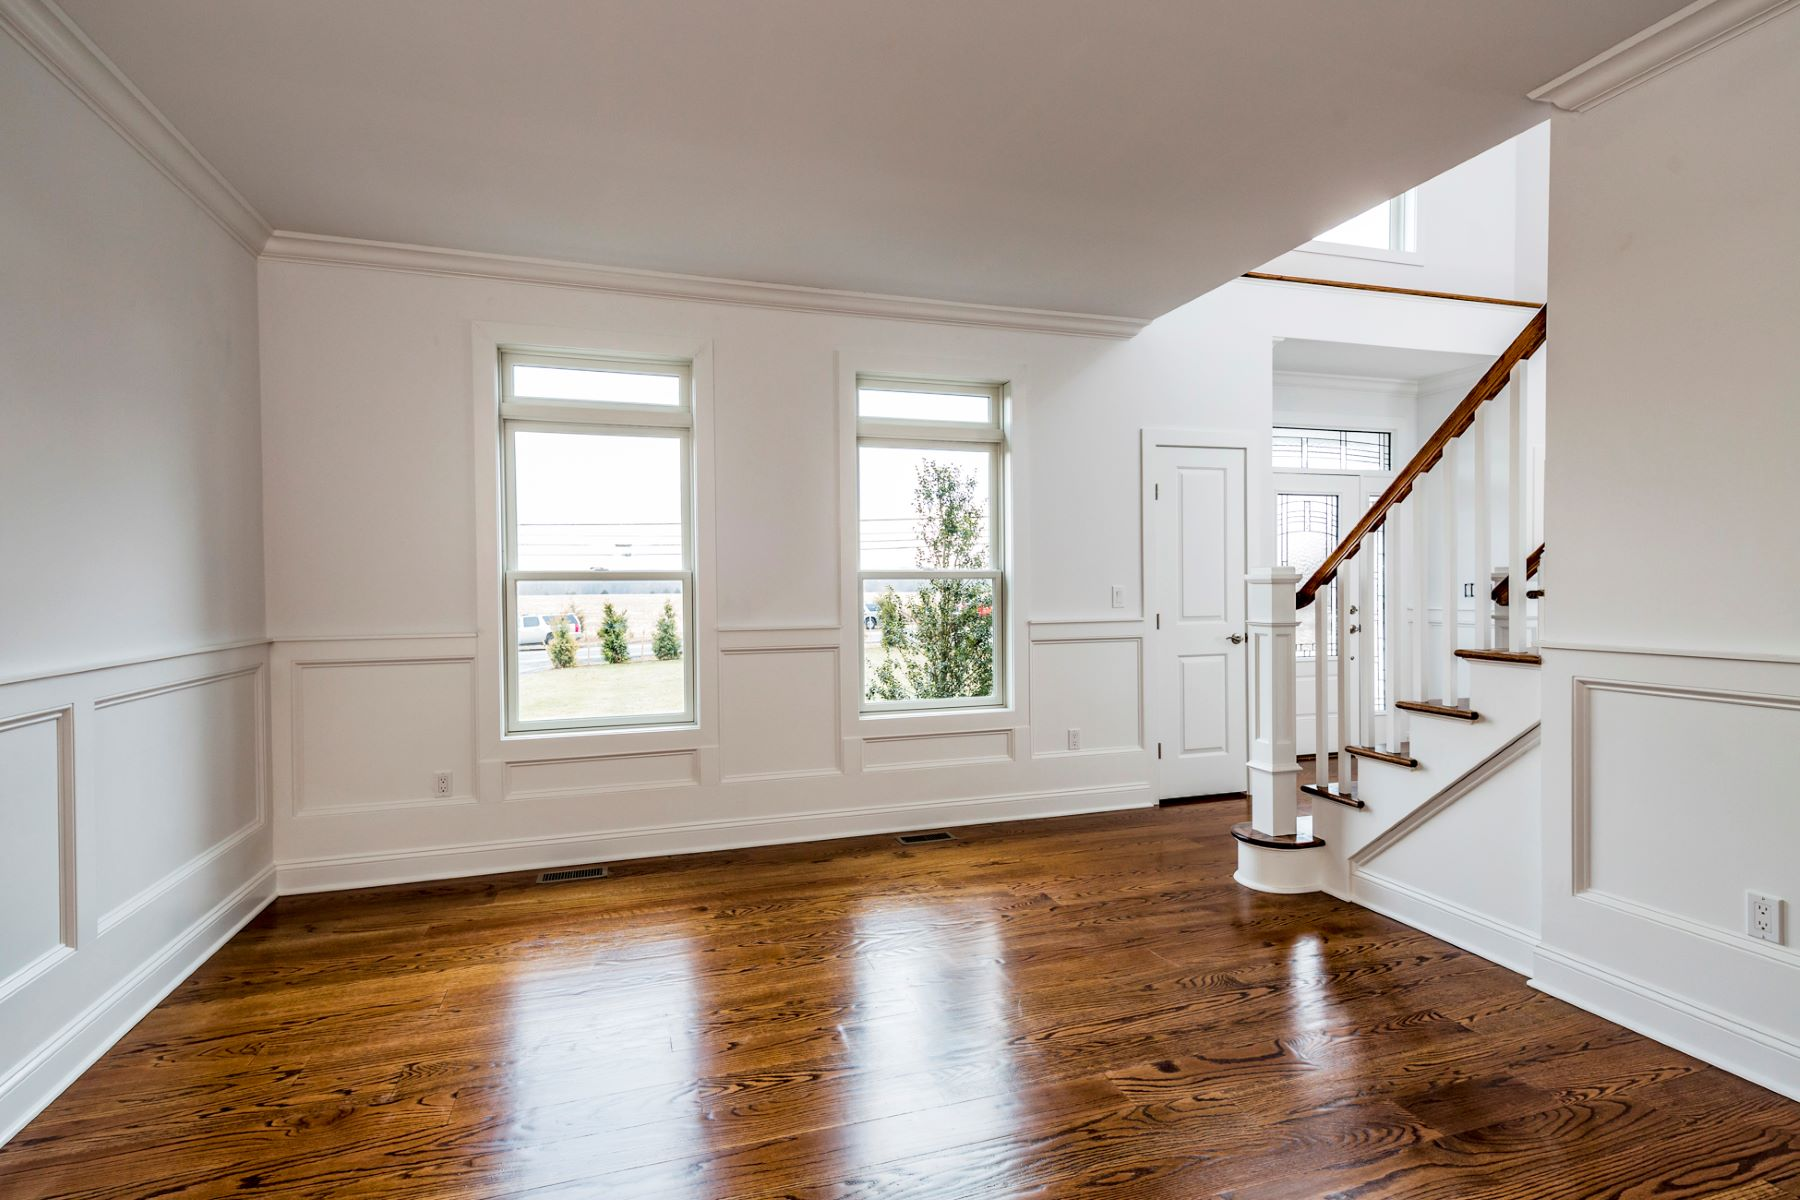 Additional photo for property listing at Elegant Addition to a Stretch of Fine Properties 9 Elm Ridge Road, Pennington, New Jersey 08534 United States